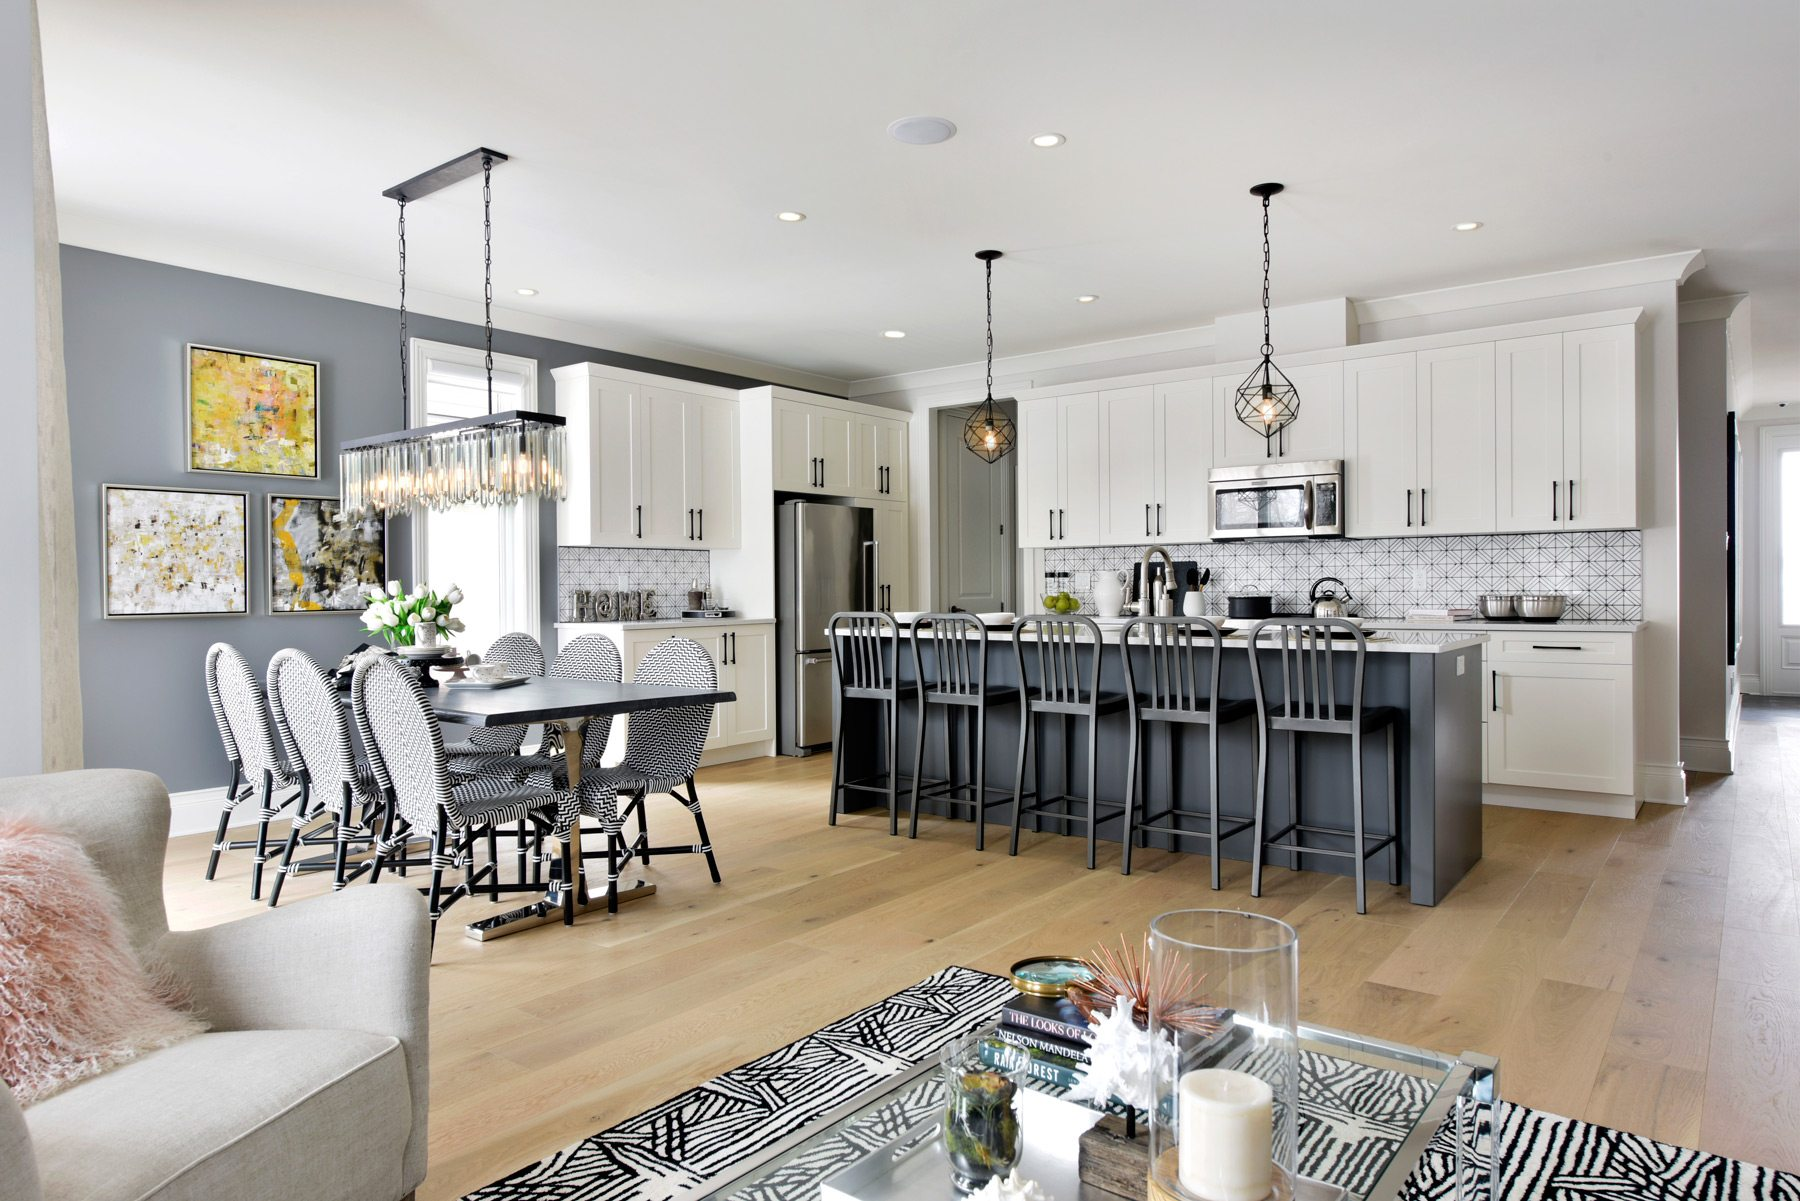 Minto's Butternut Kitchen. Photo: Gordon King Photography